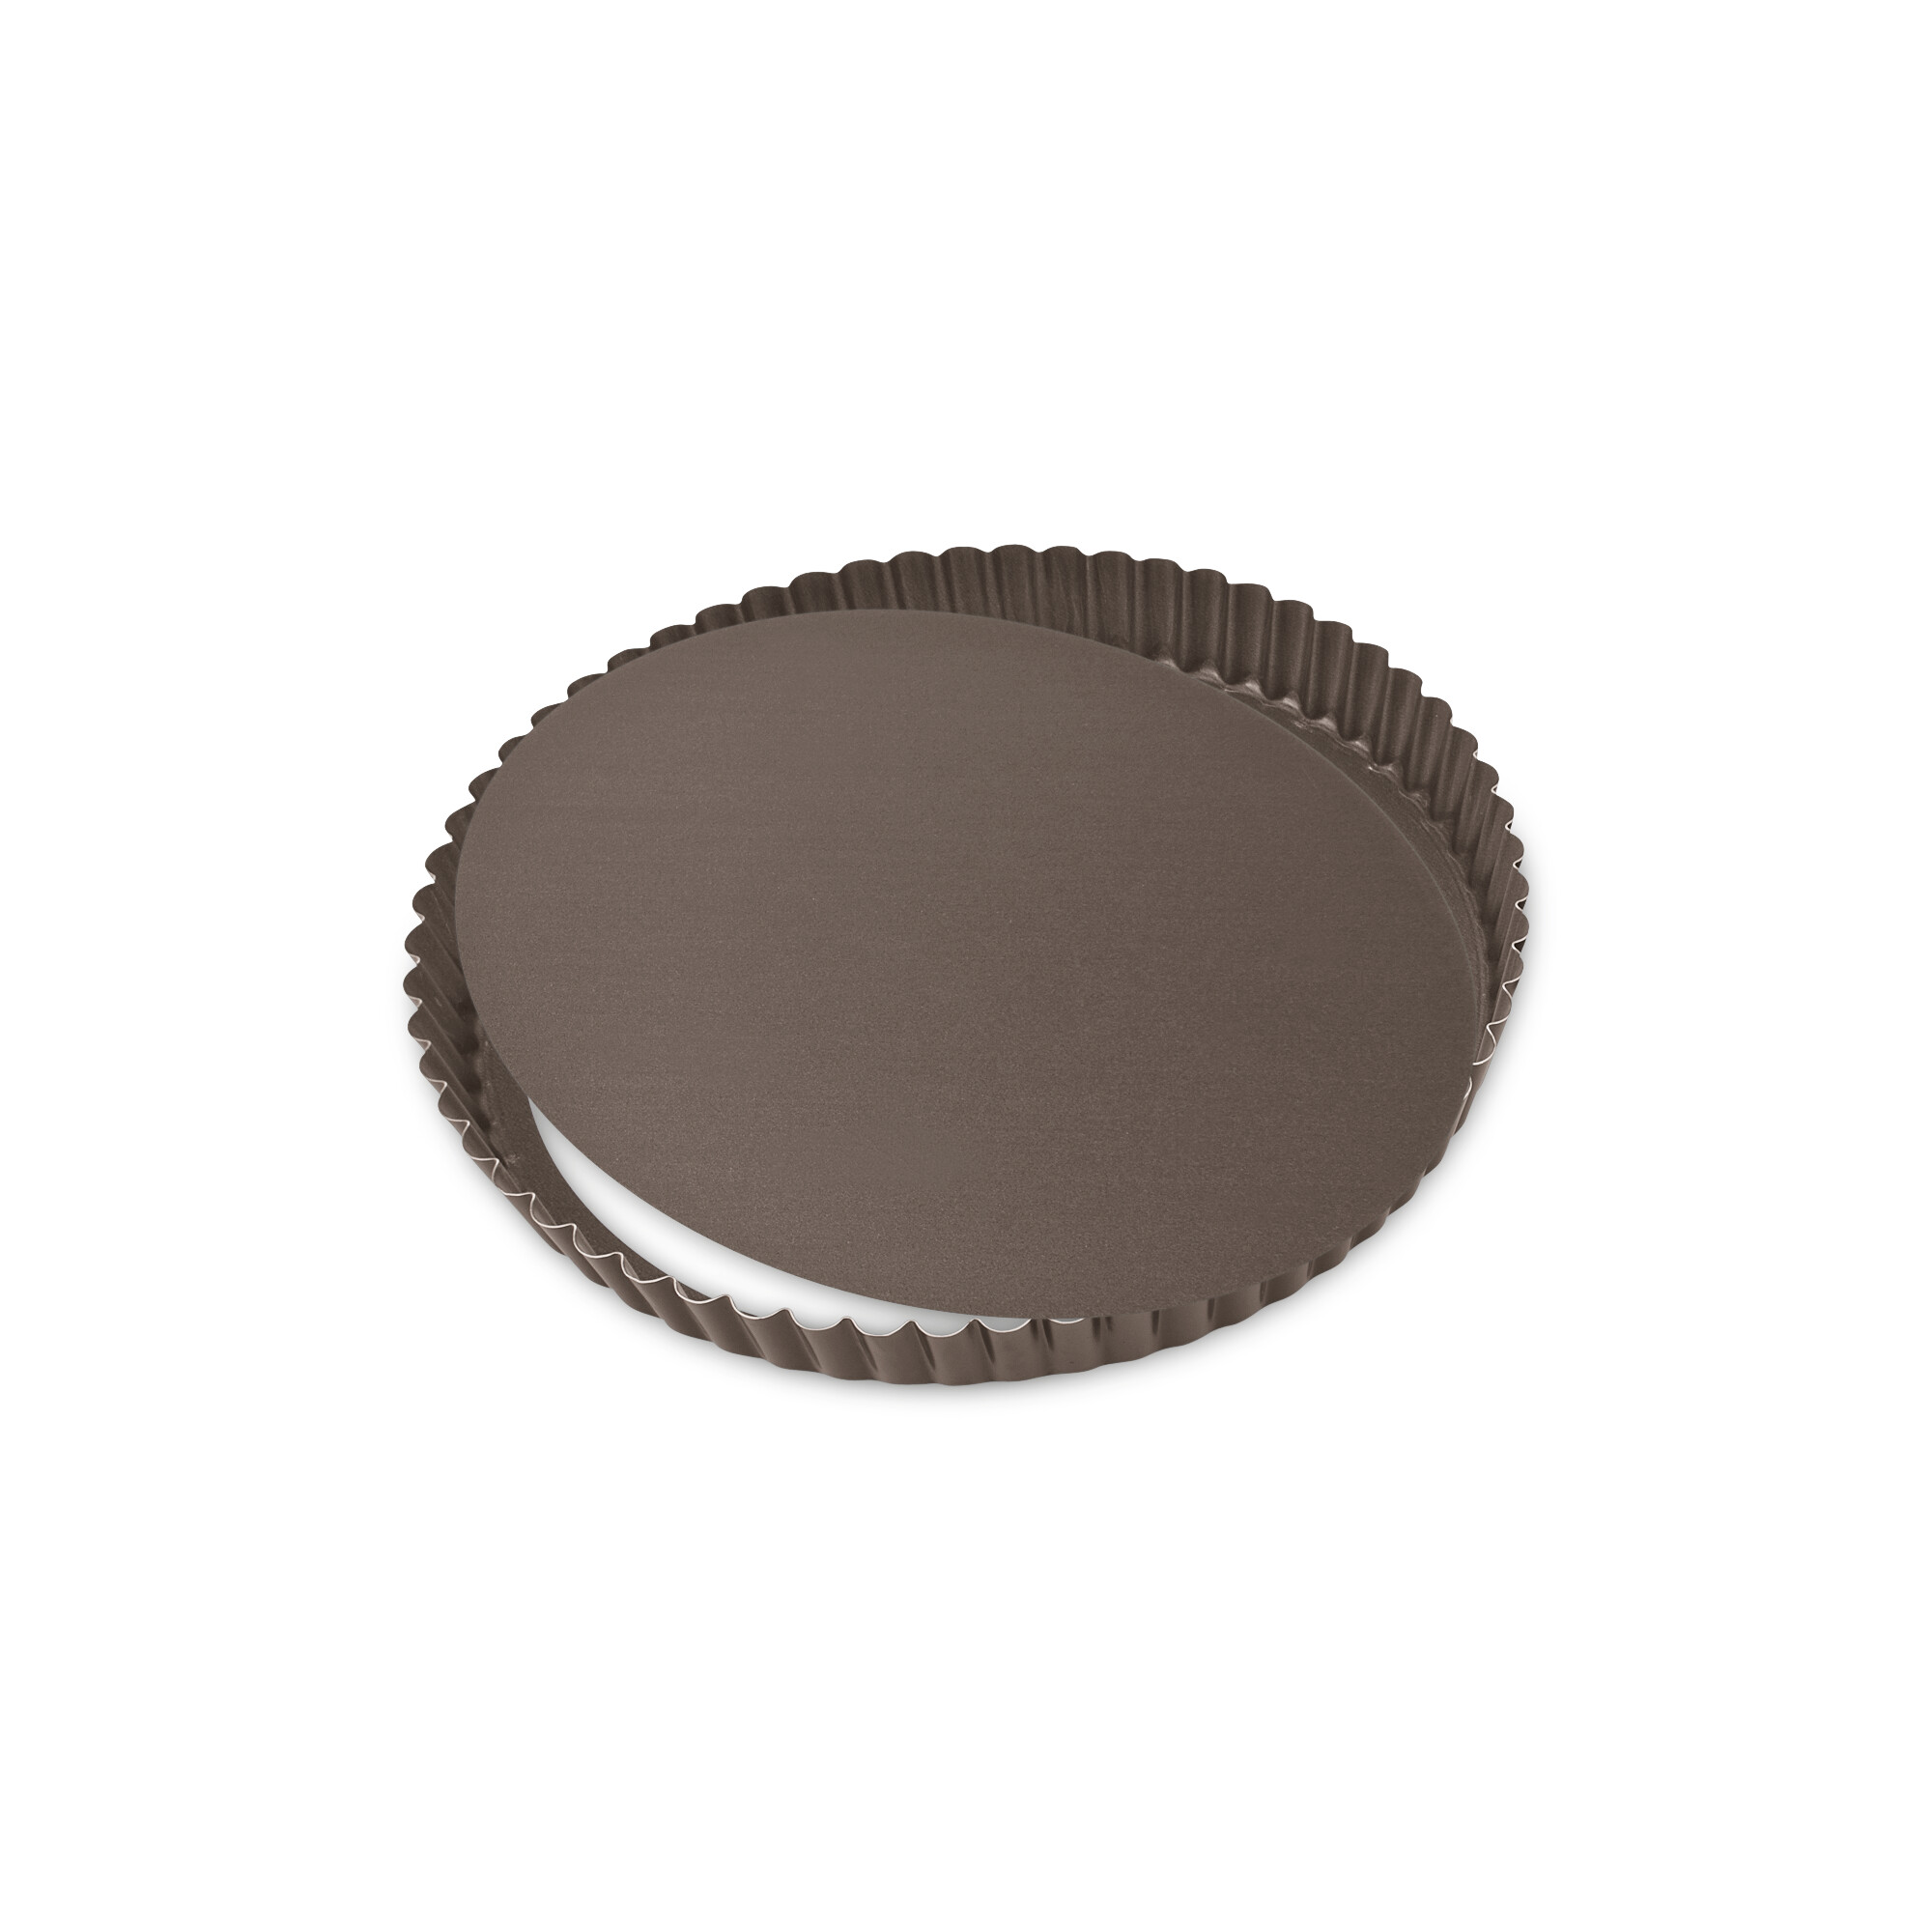 Tart tin with removable bottom - Round